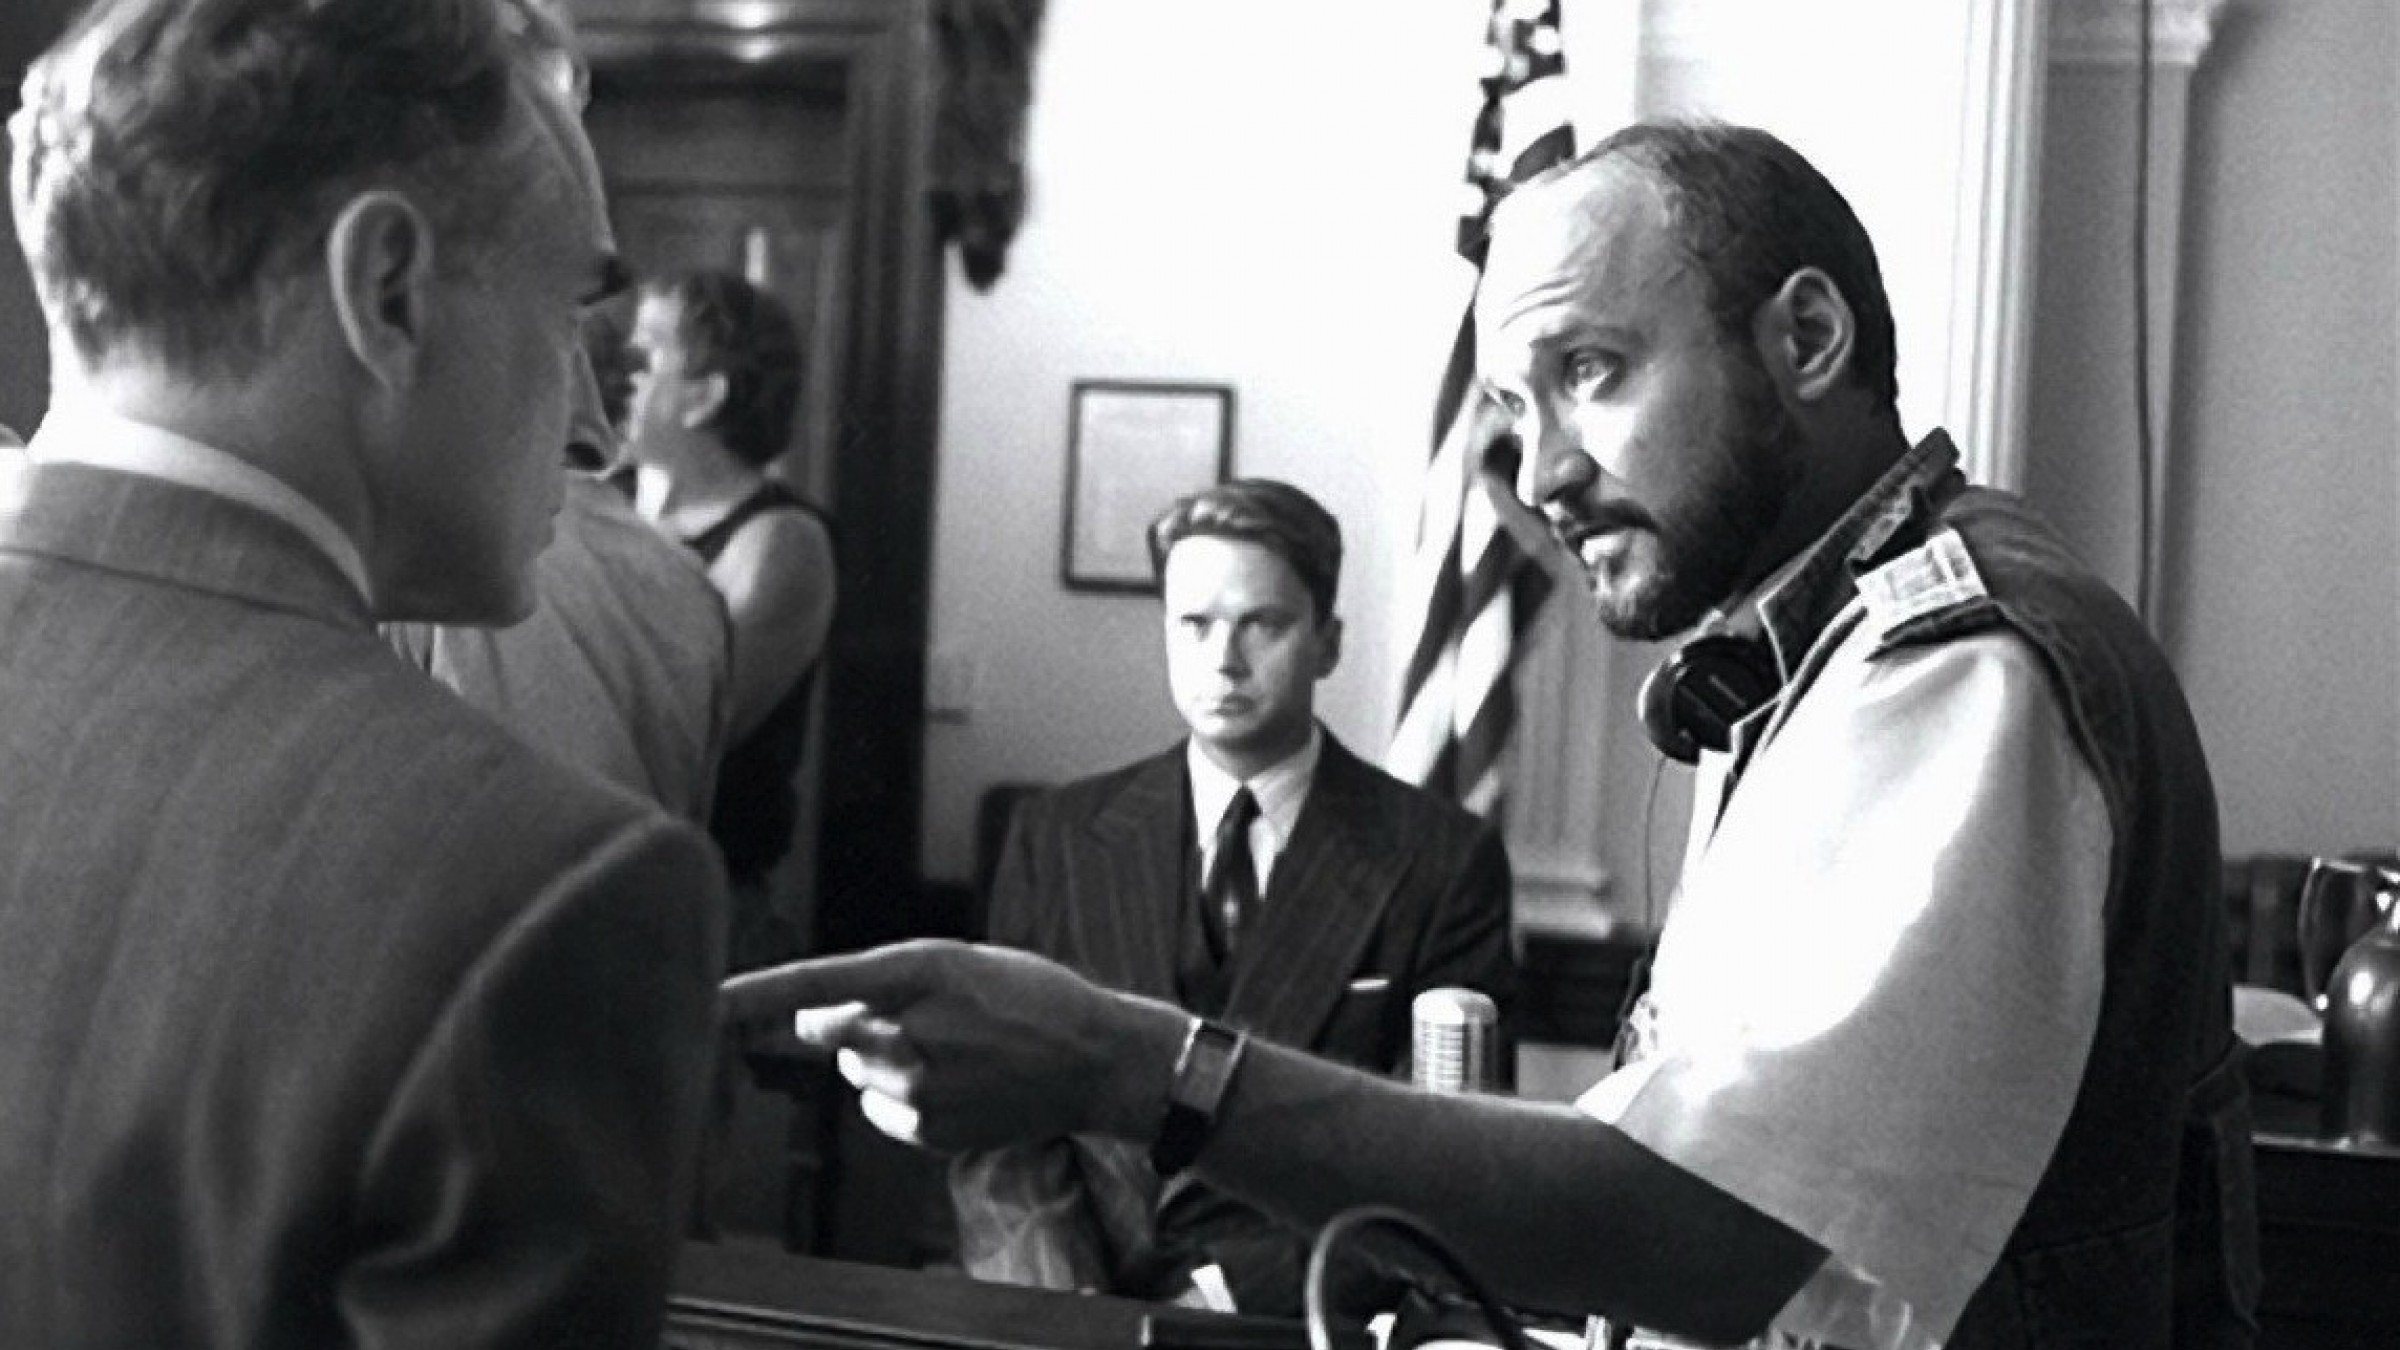 Director Frank Darabont Offers Insight into Starting a Film Career